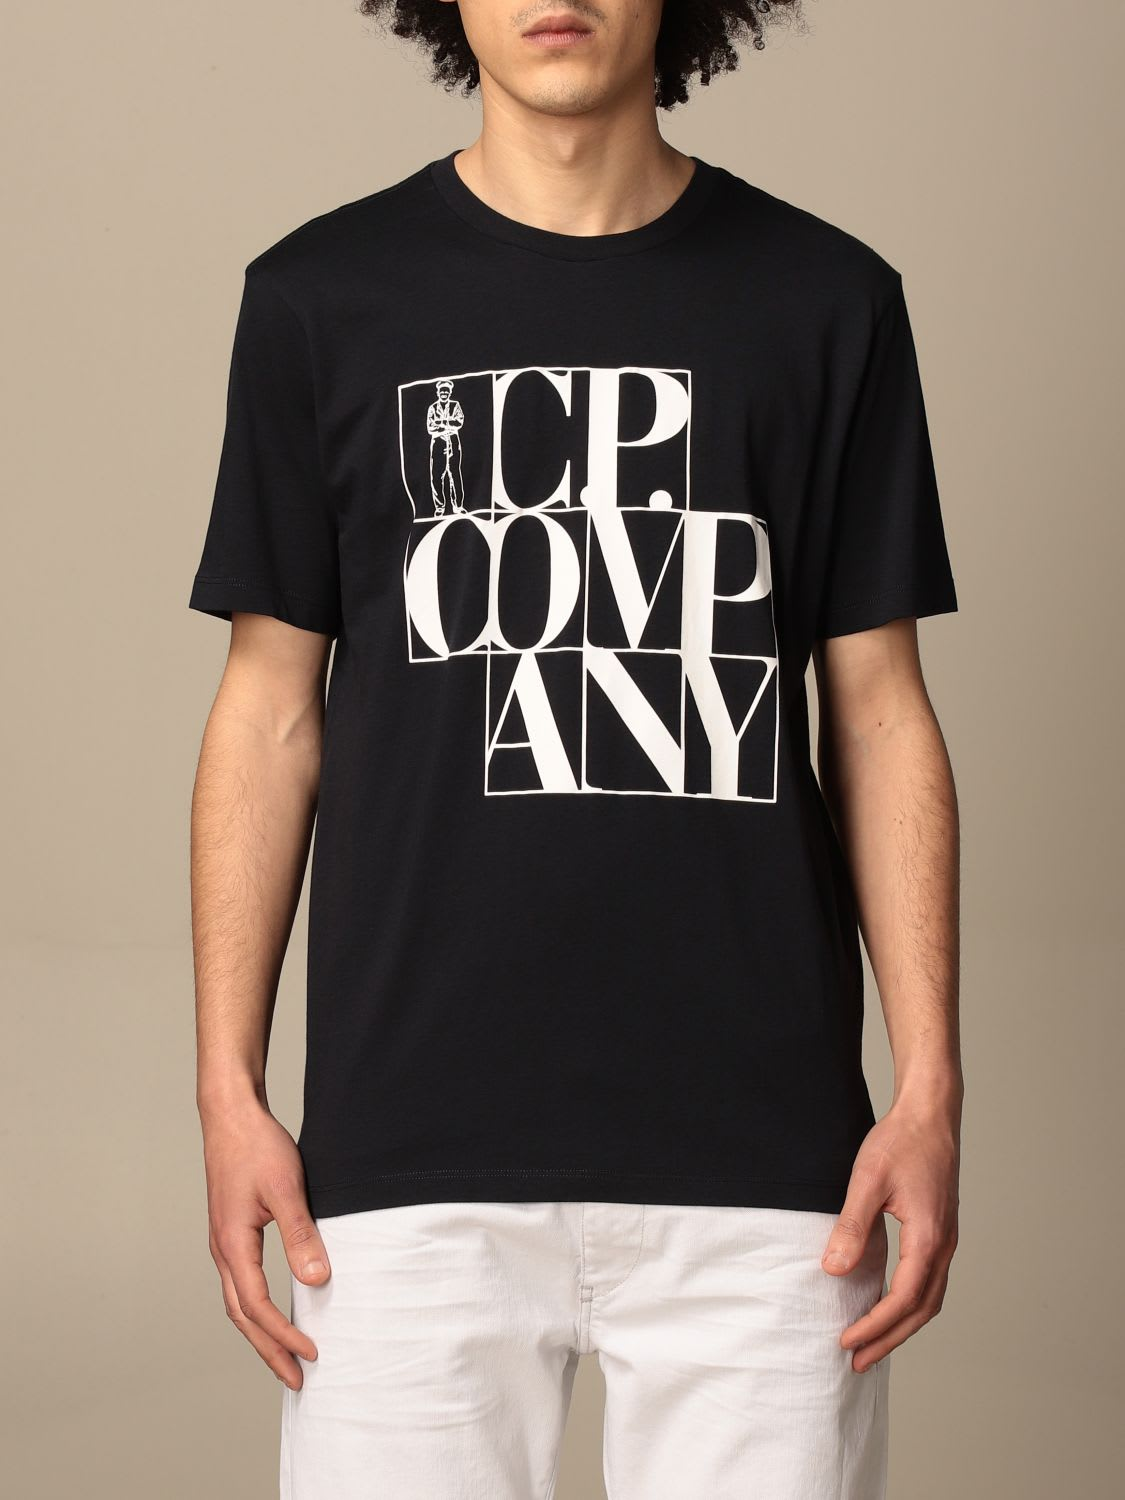 C.p. Company C.P. COMPANY T-SHIRT C.P. T-SHIRT COMPANY IN COTTON WITH BIG LOGO